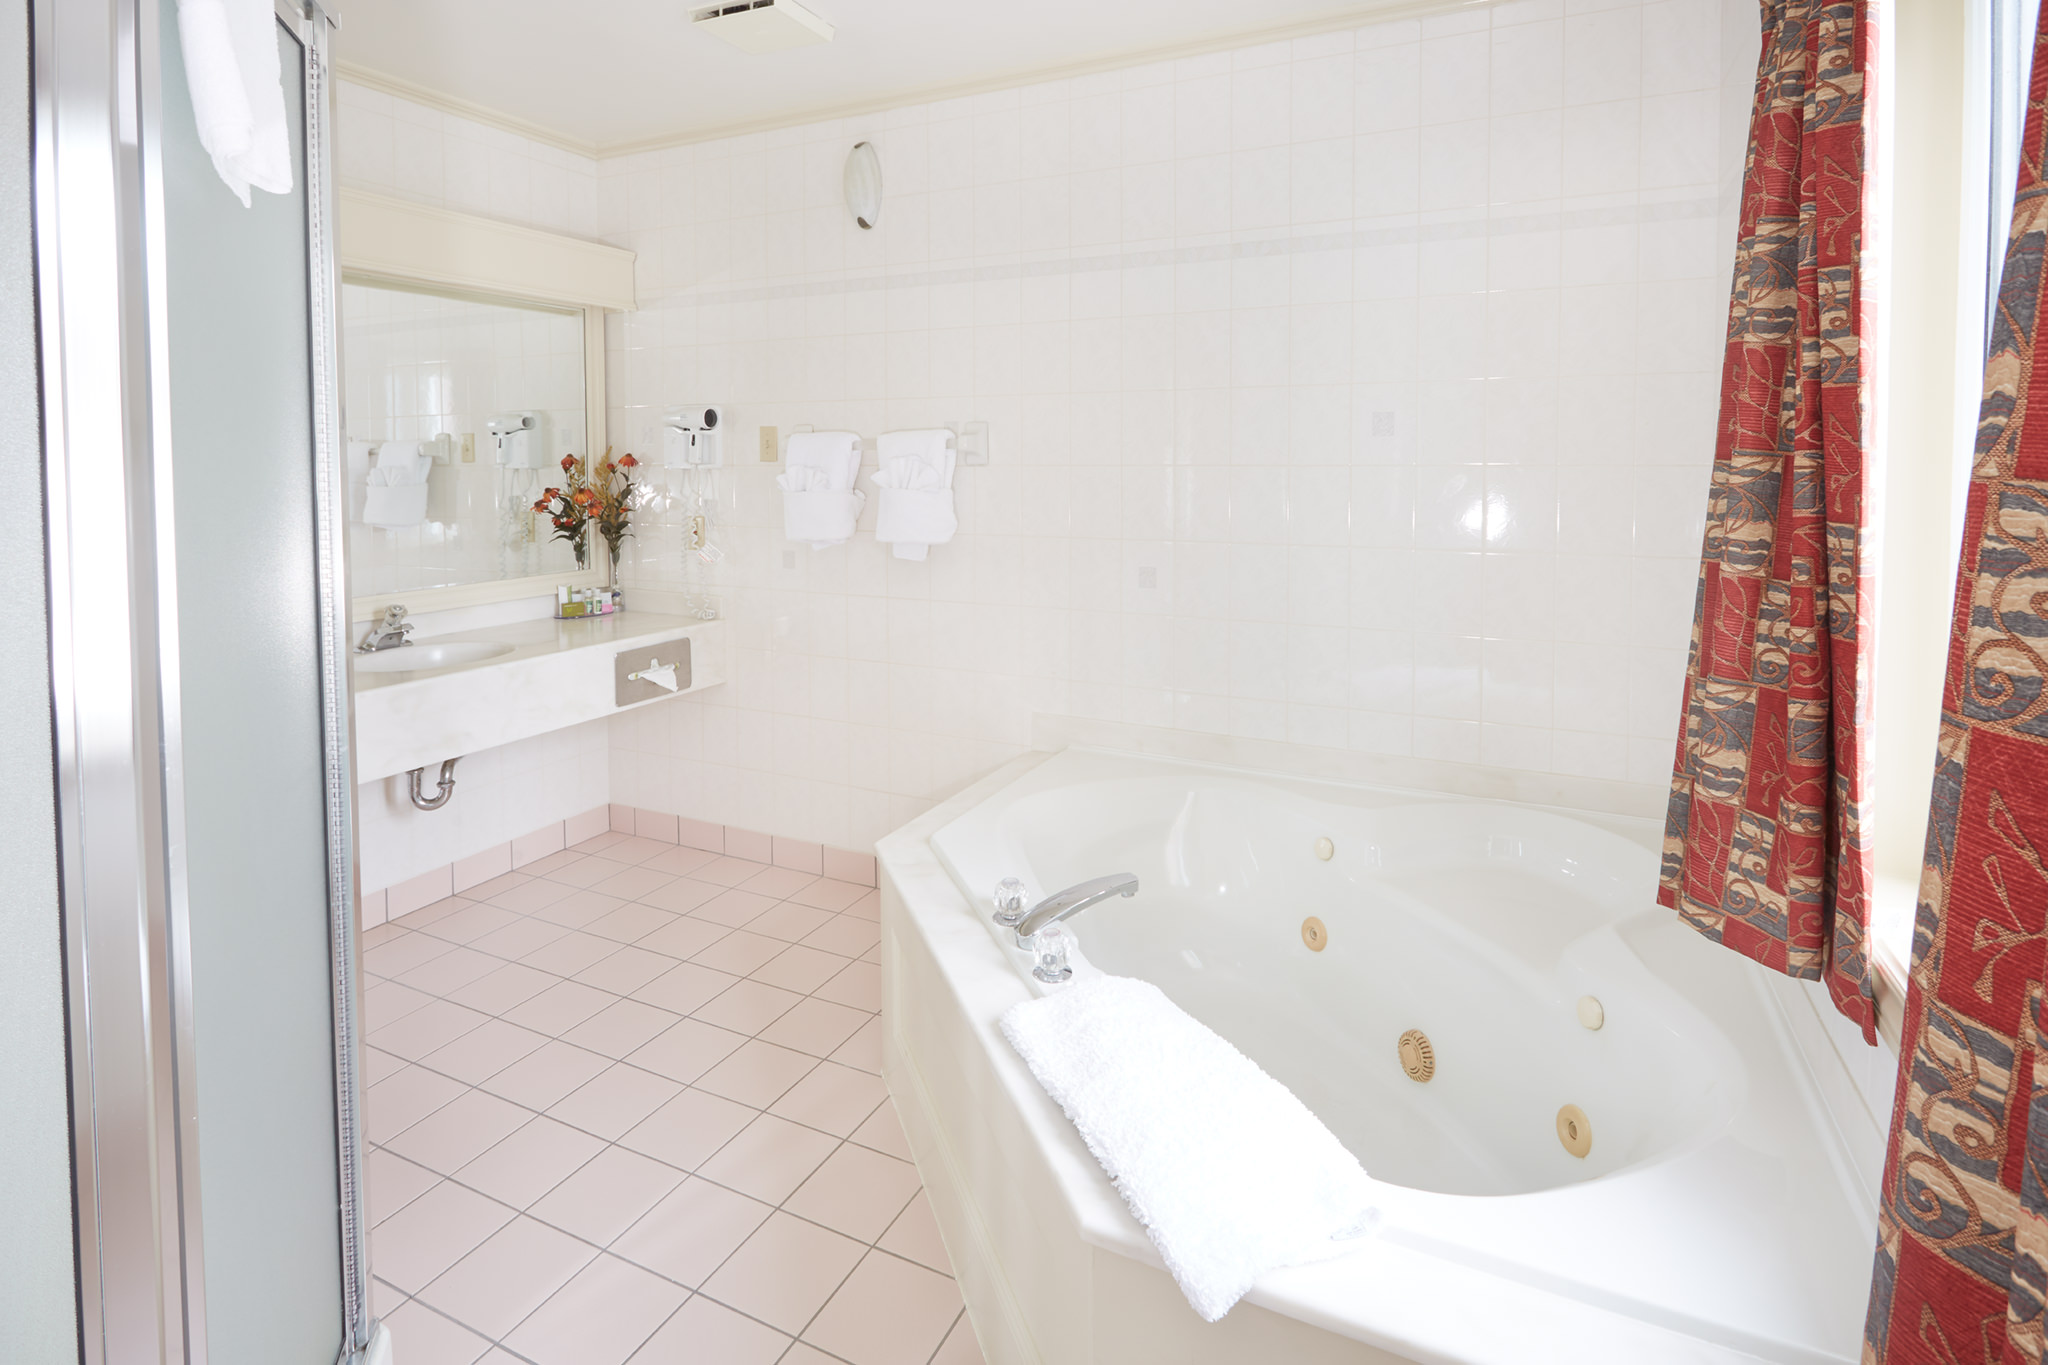 2 Story 1 Bedroom Suite - Master Bath 357